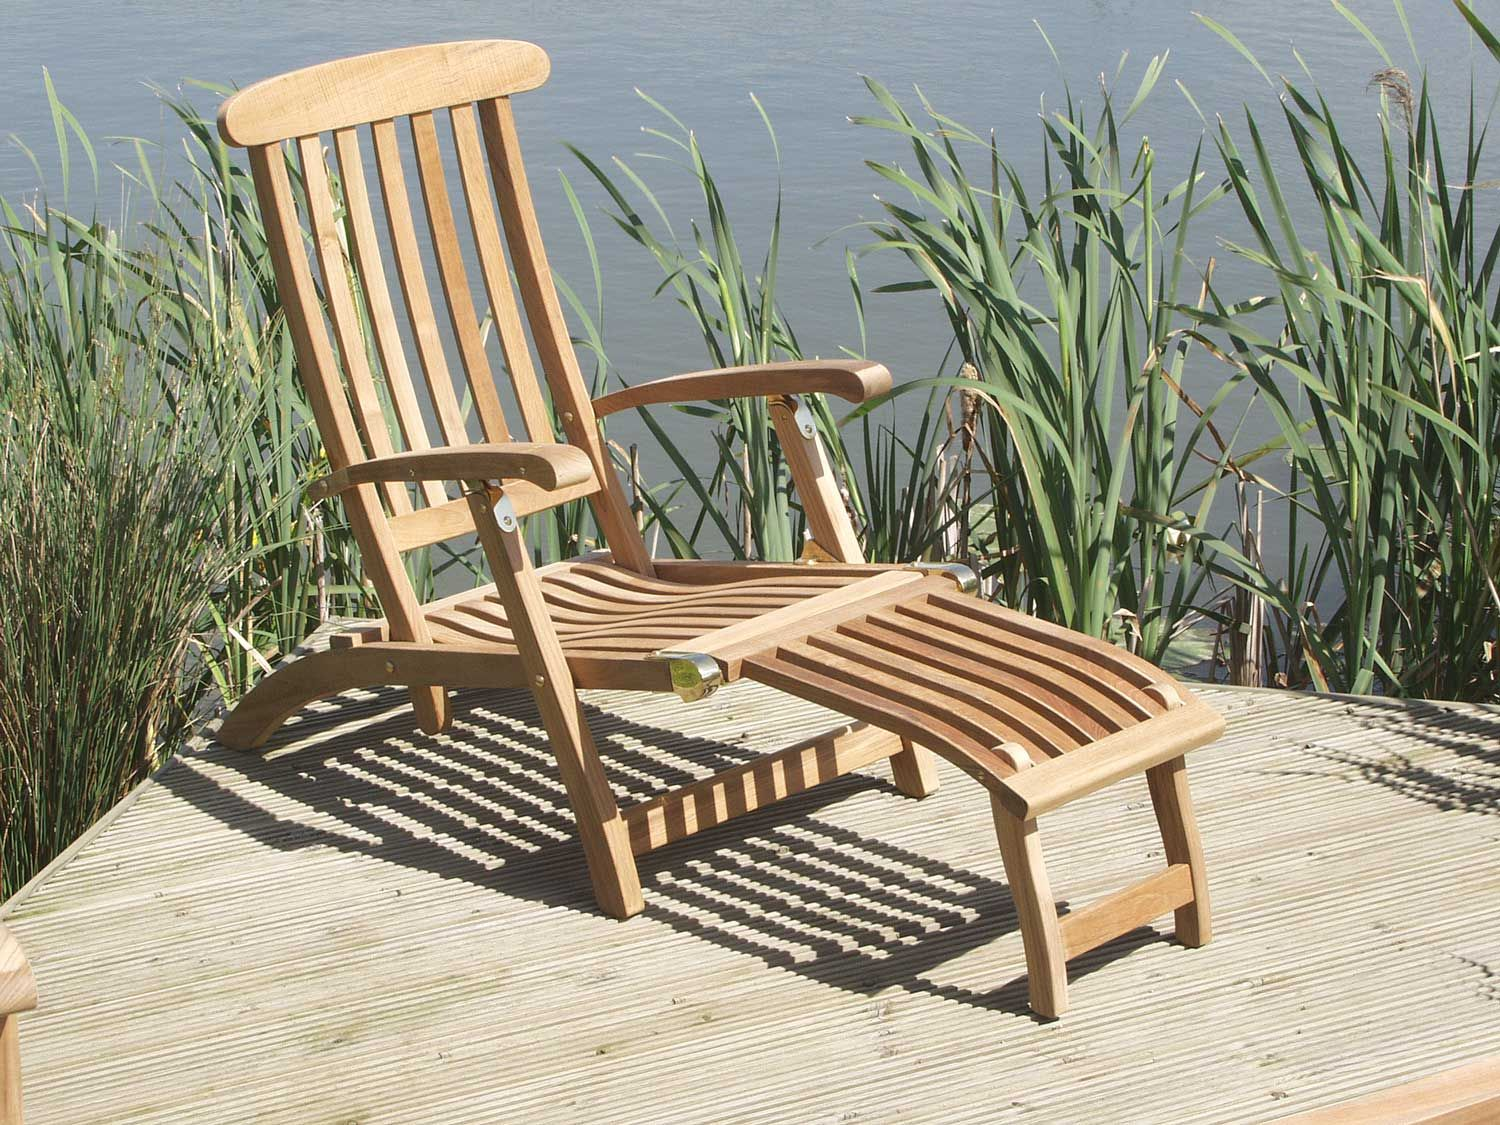 The superbly designed Commodore Chair uses marine quality